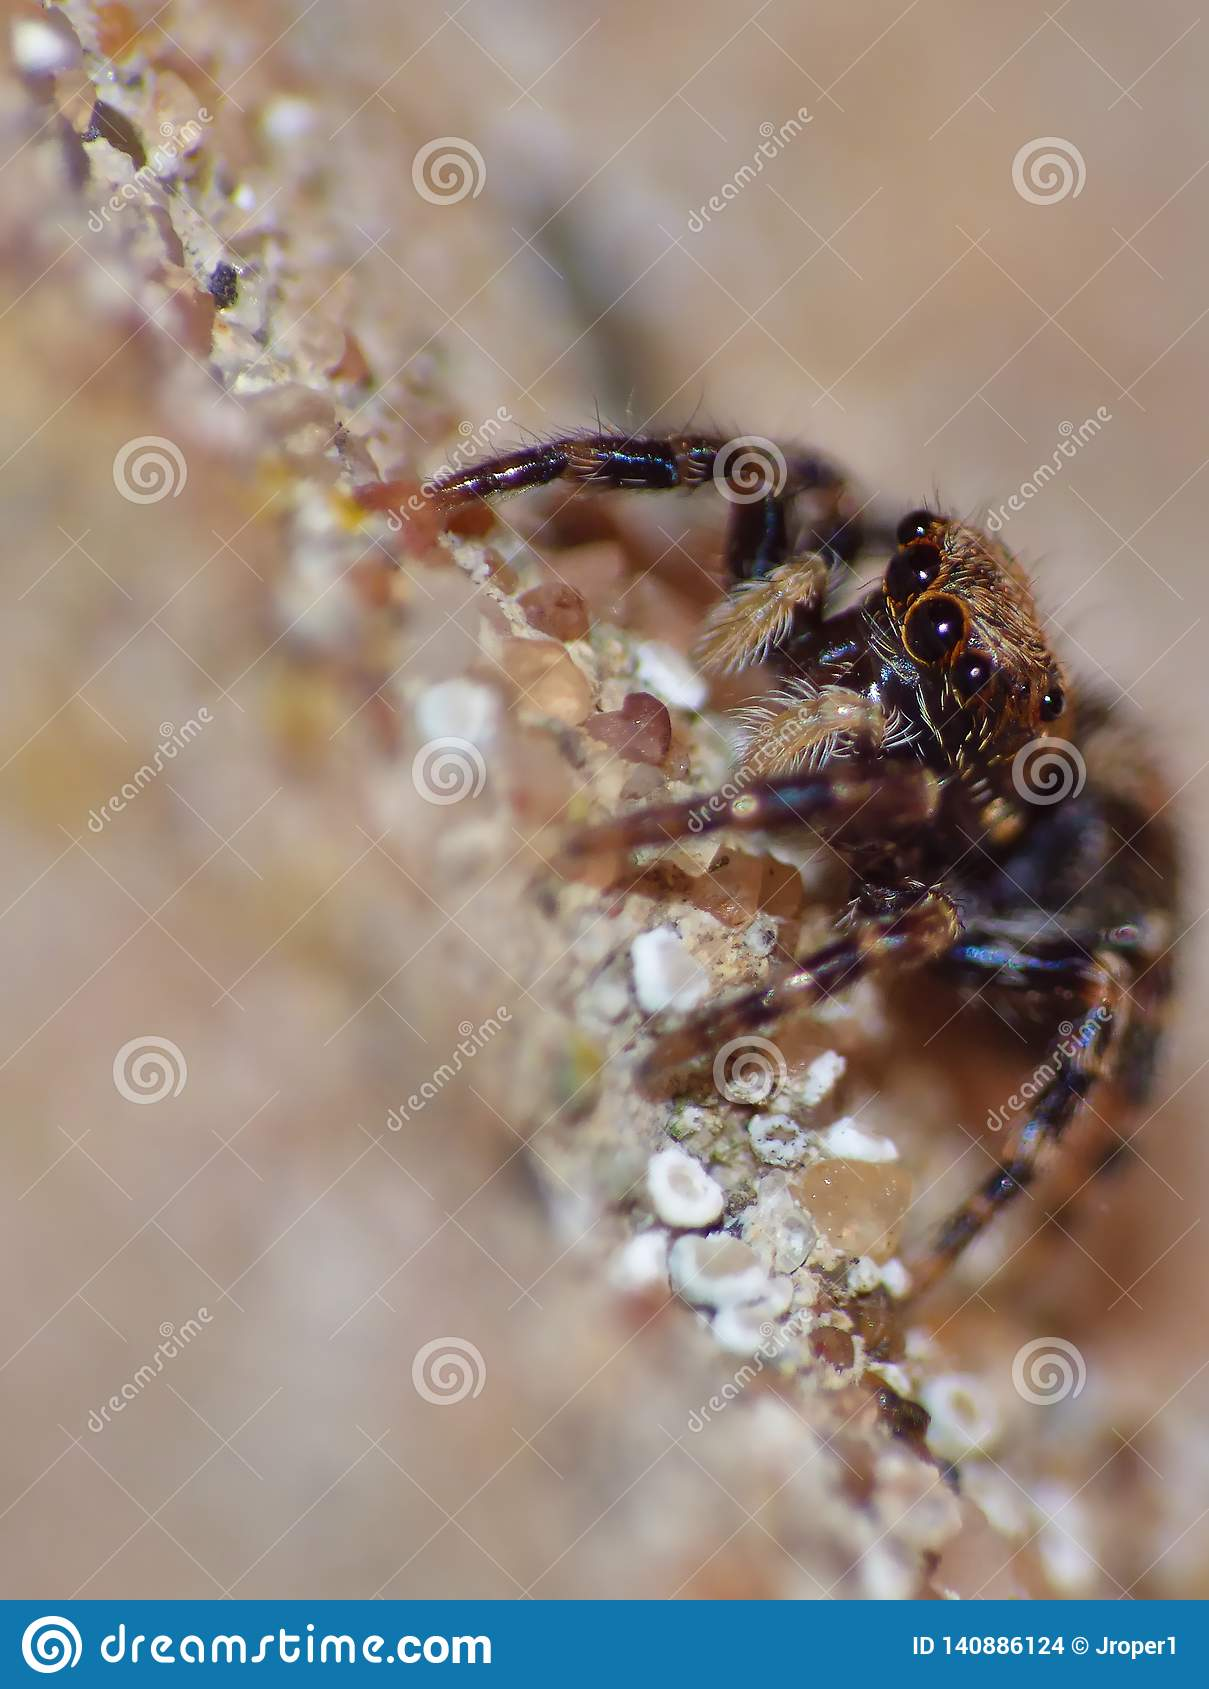 Insect Jumping Spider Close Up Macro